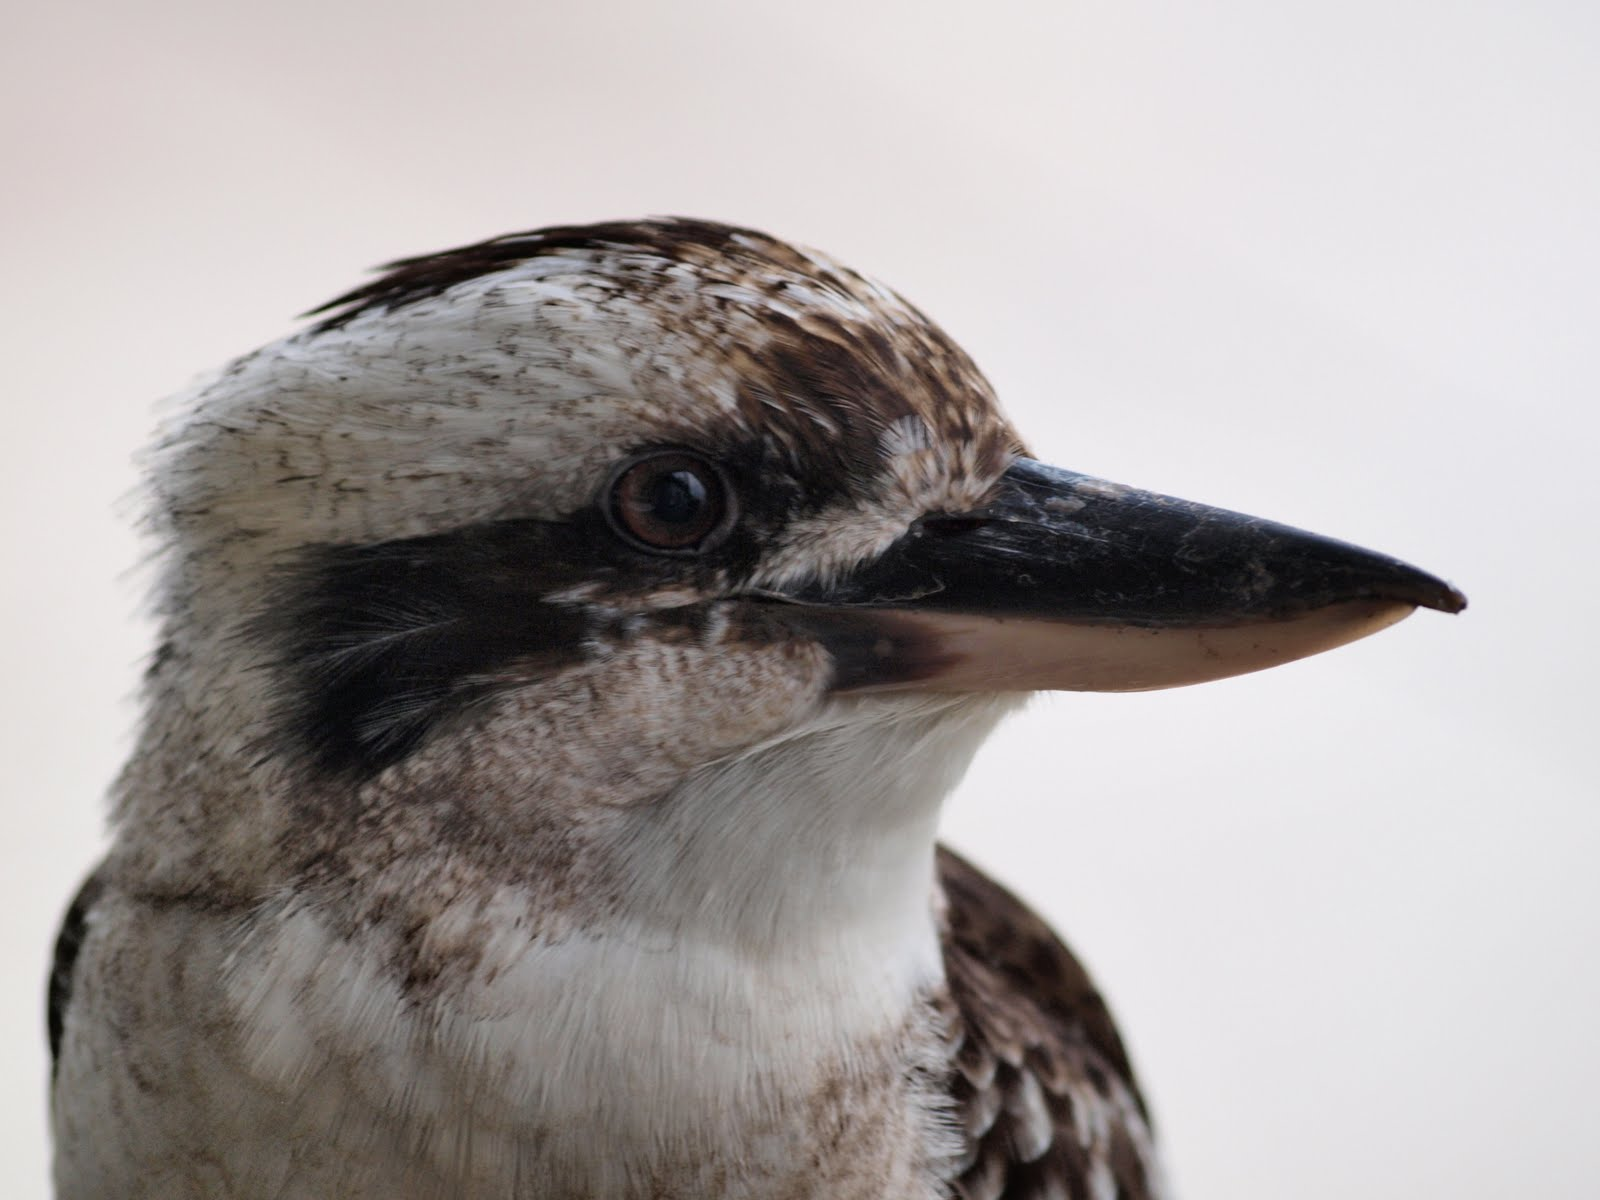 Kookaburra sits in the old gum tree. Merry, merry king of the bush is he